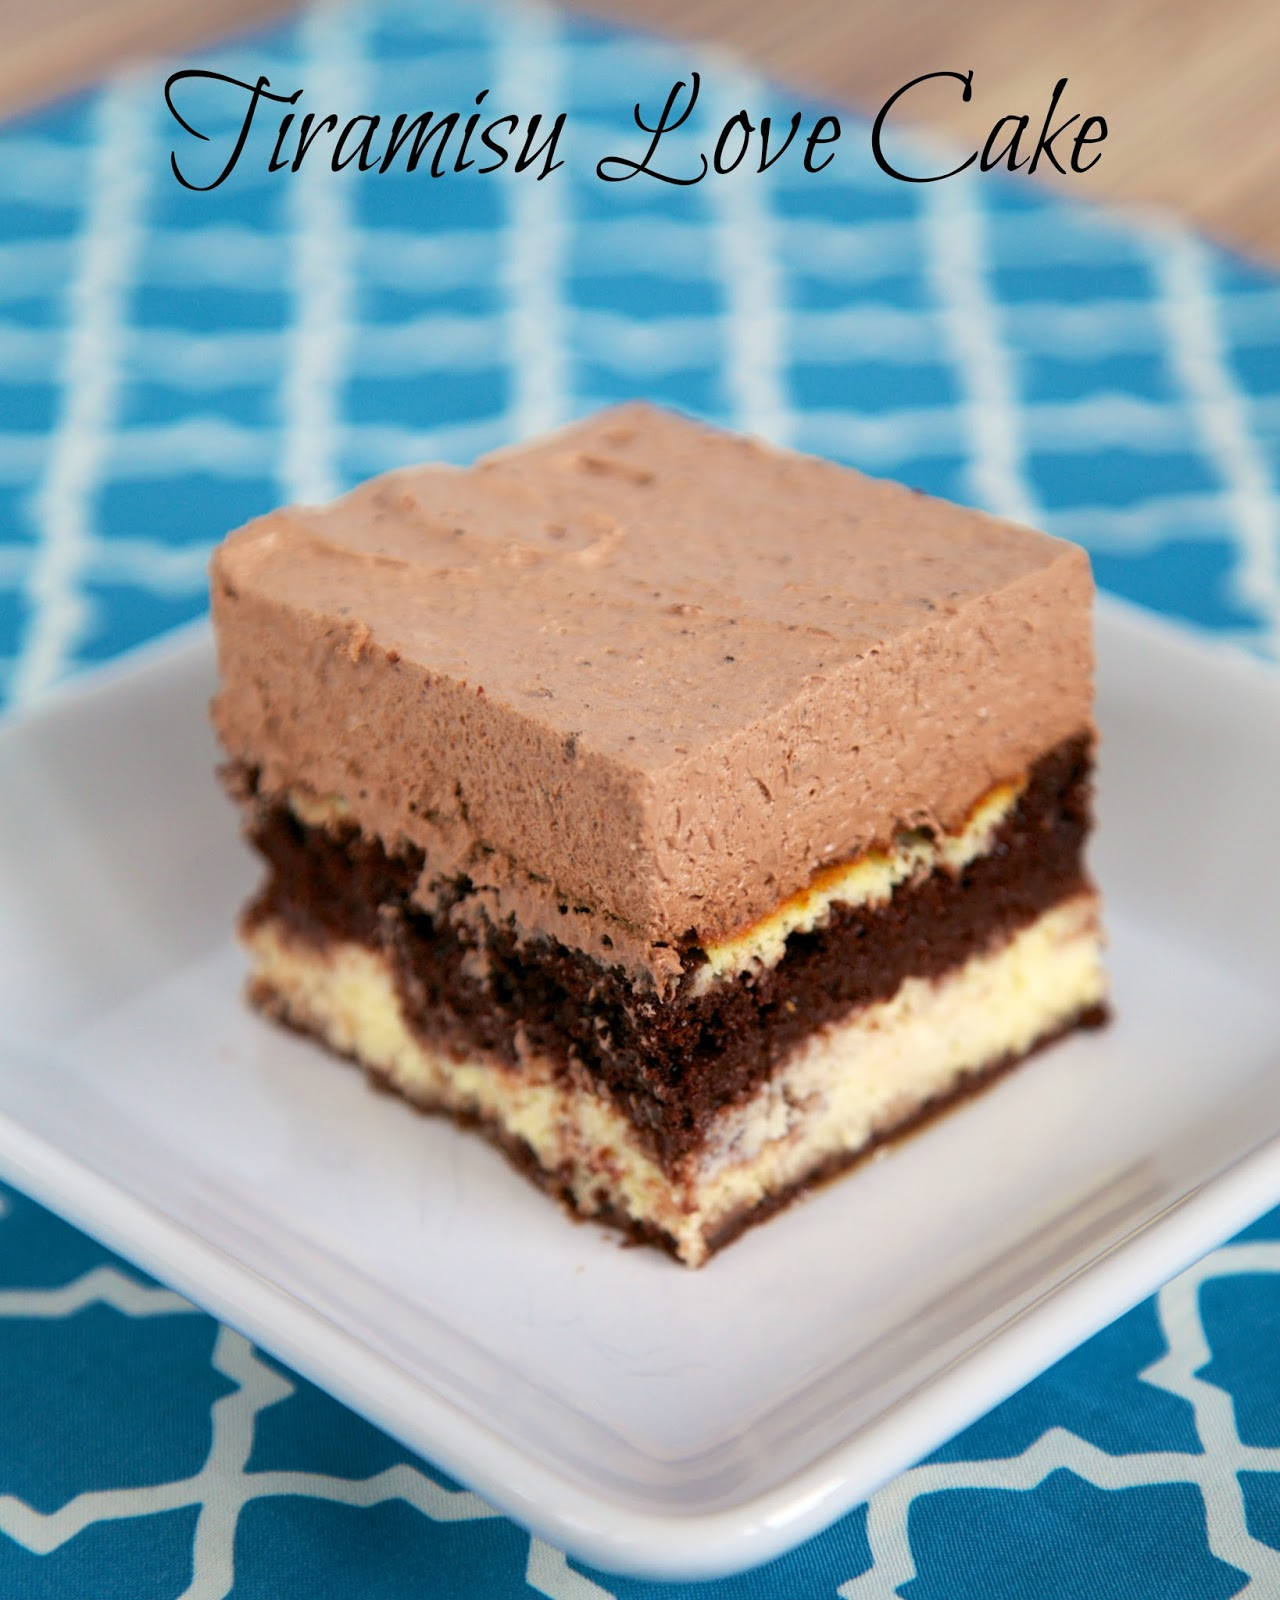 Tiramisu Love Cake - all the flavors of tiramisu in a cake. Cake mix, sweetened ricotta, Kahula topped with a chocolate pudding, Cool Whip and Kahula frosting. This is SO good! Can make ahead for party!